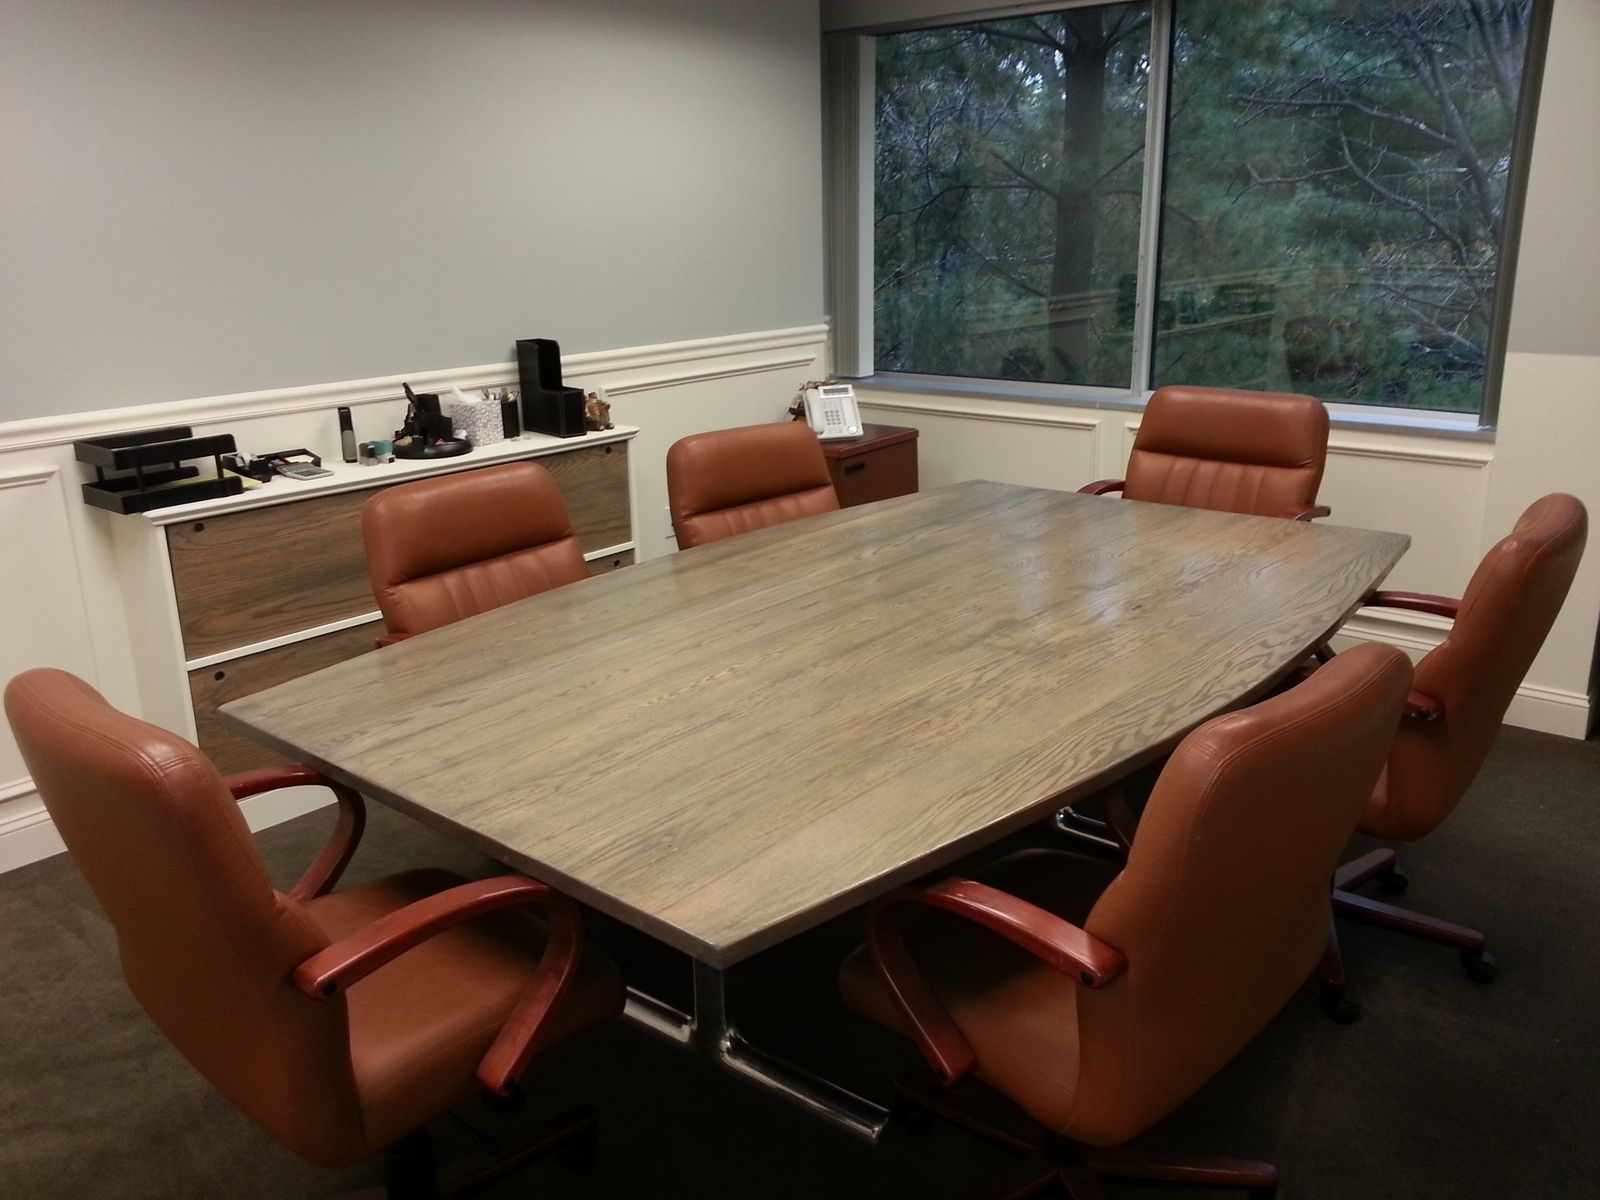 Custom Conference Table By AJC Woodworking CustomMadecom - Inexpensive conference table